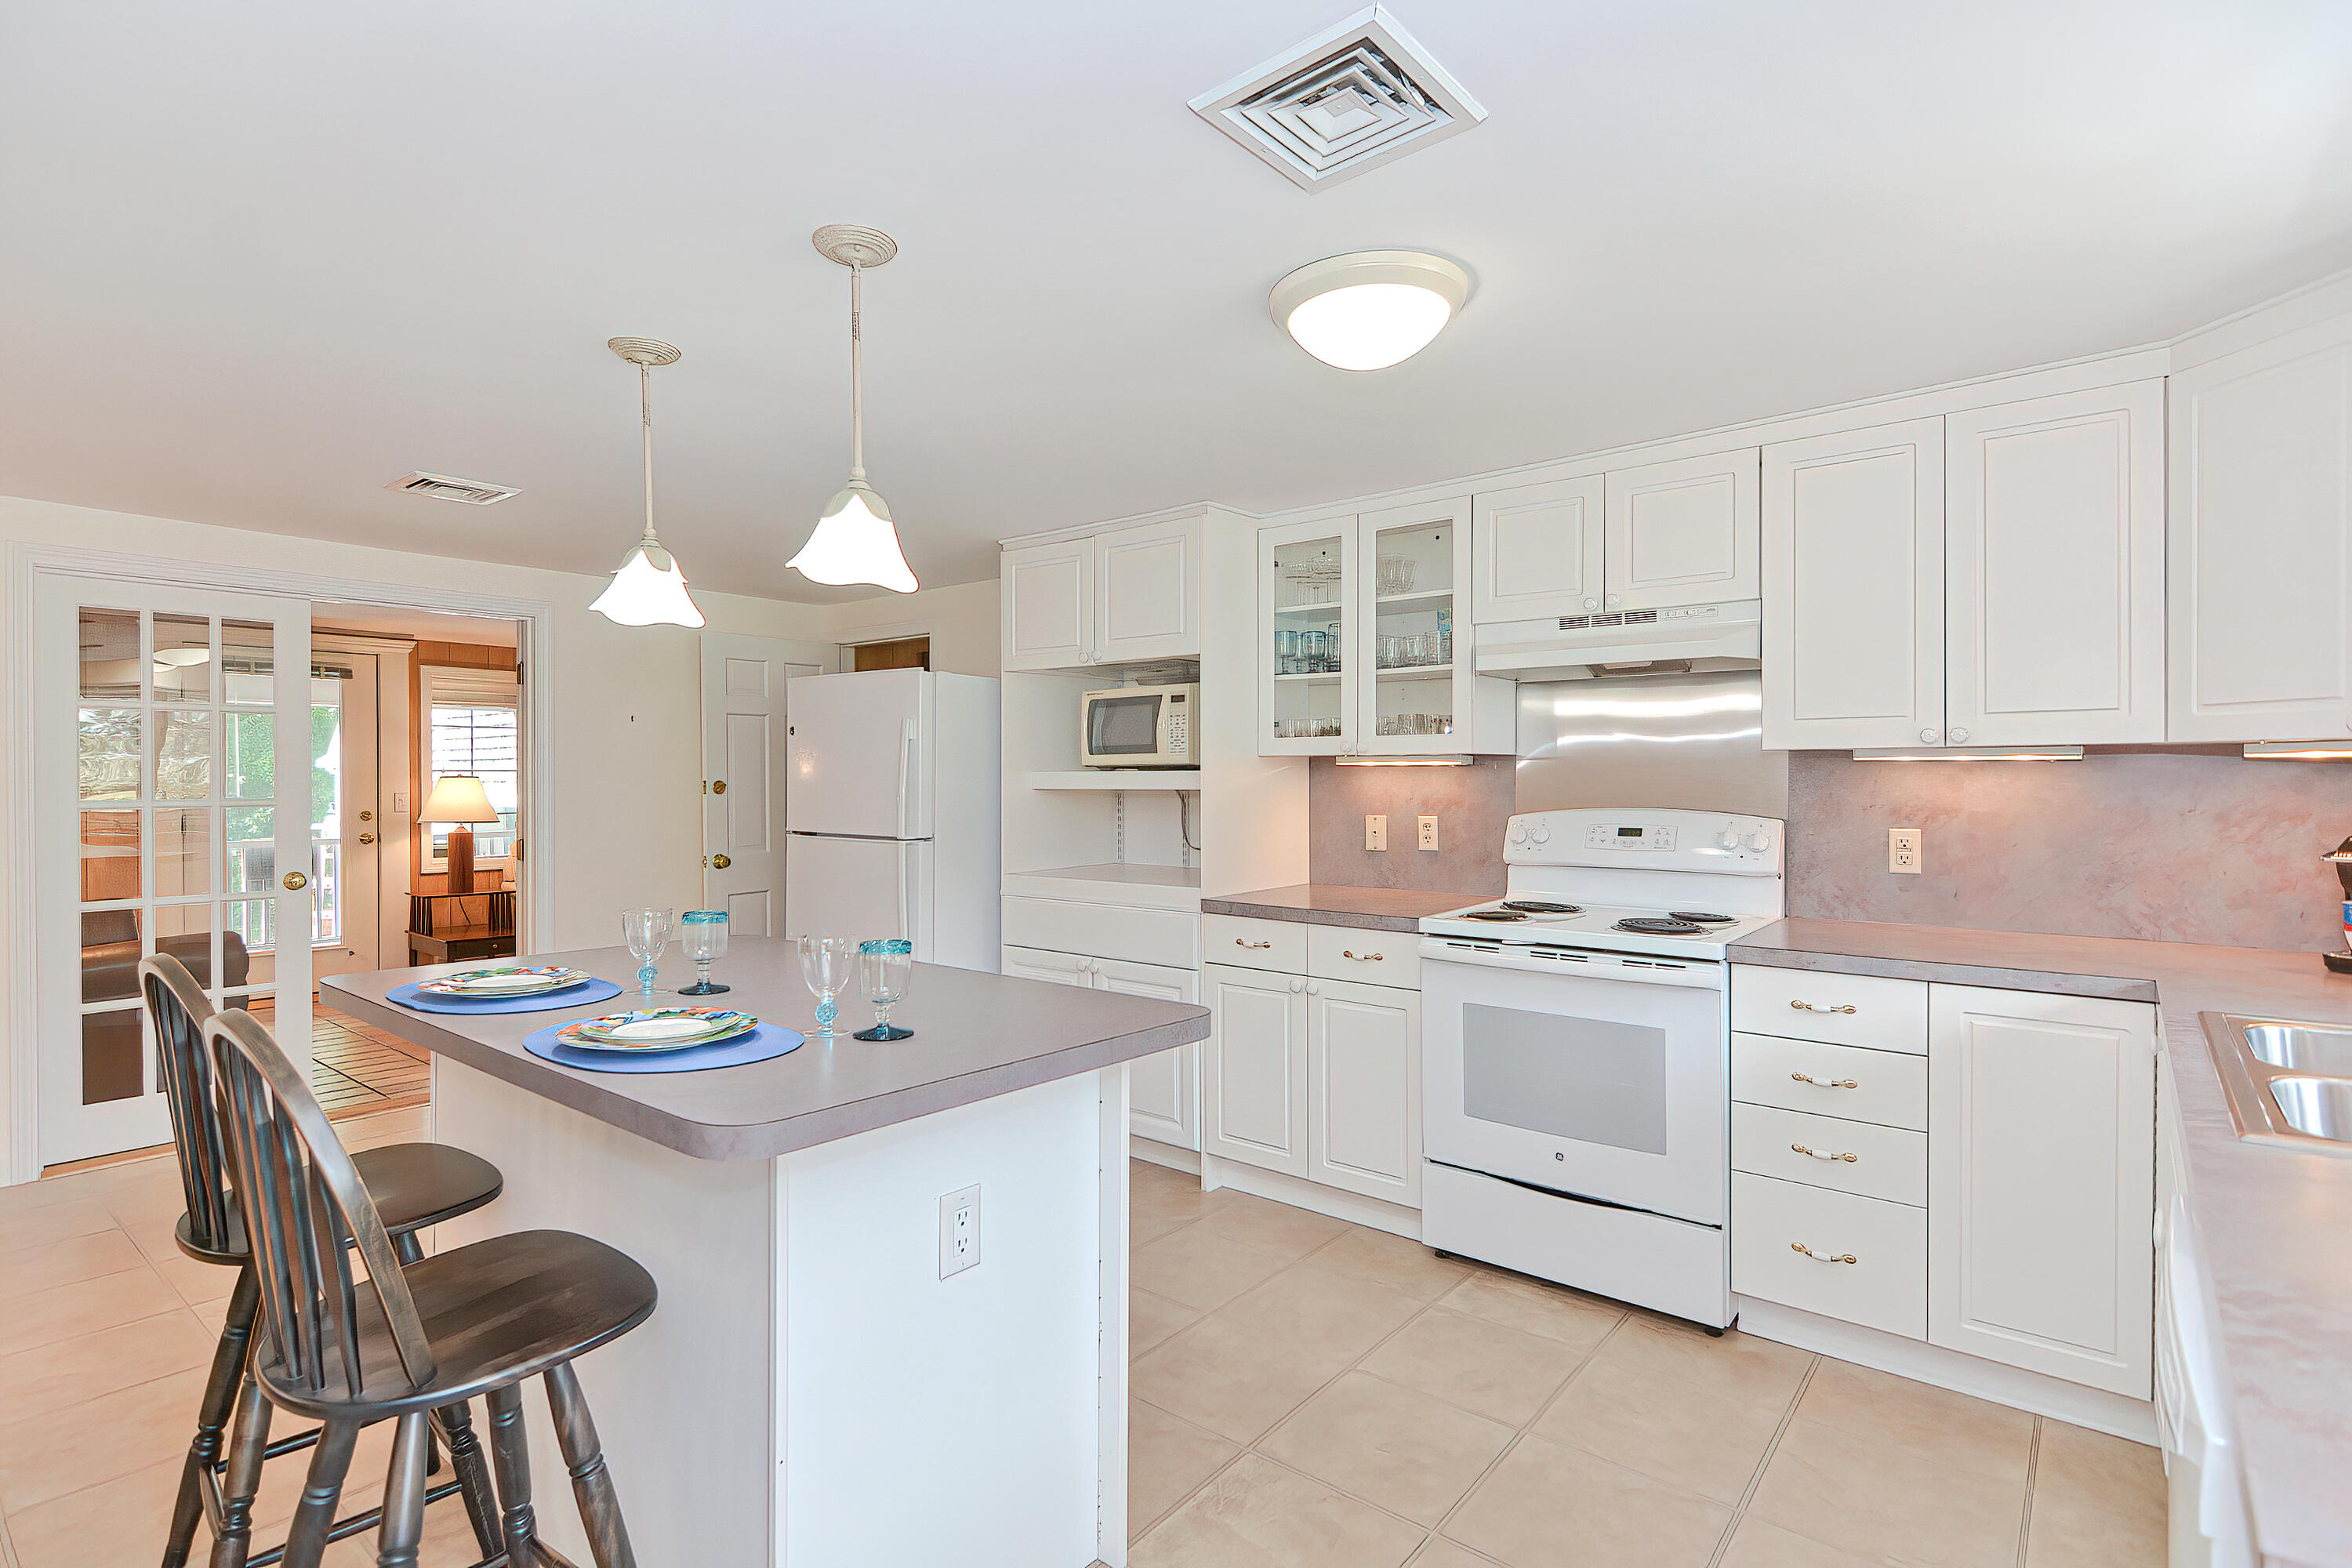 147 Center Street, Yarmouth Port MA, 02675 details